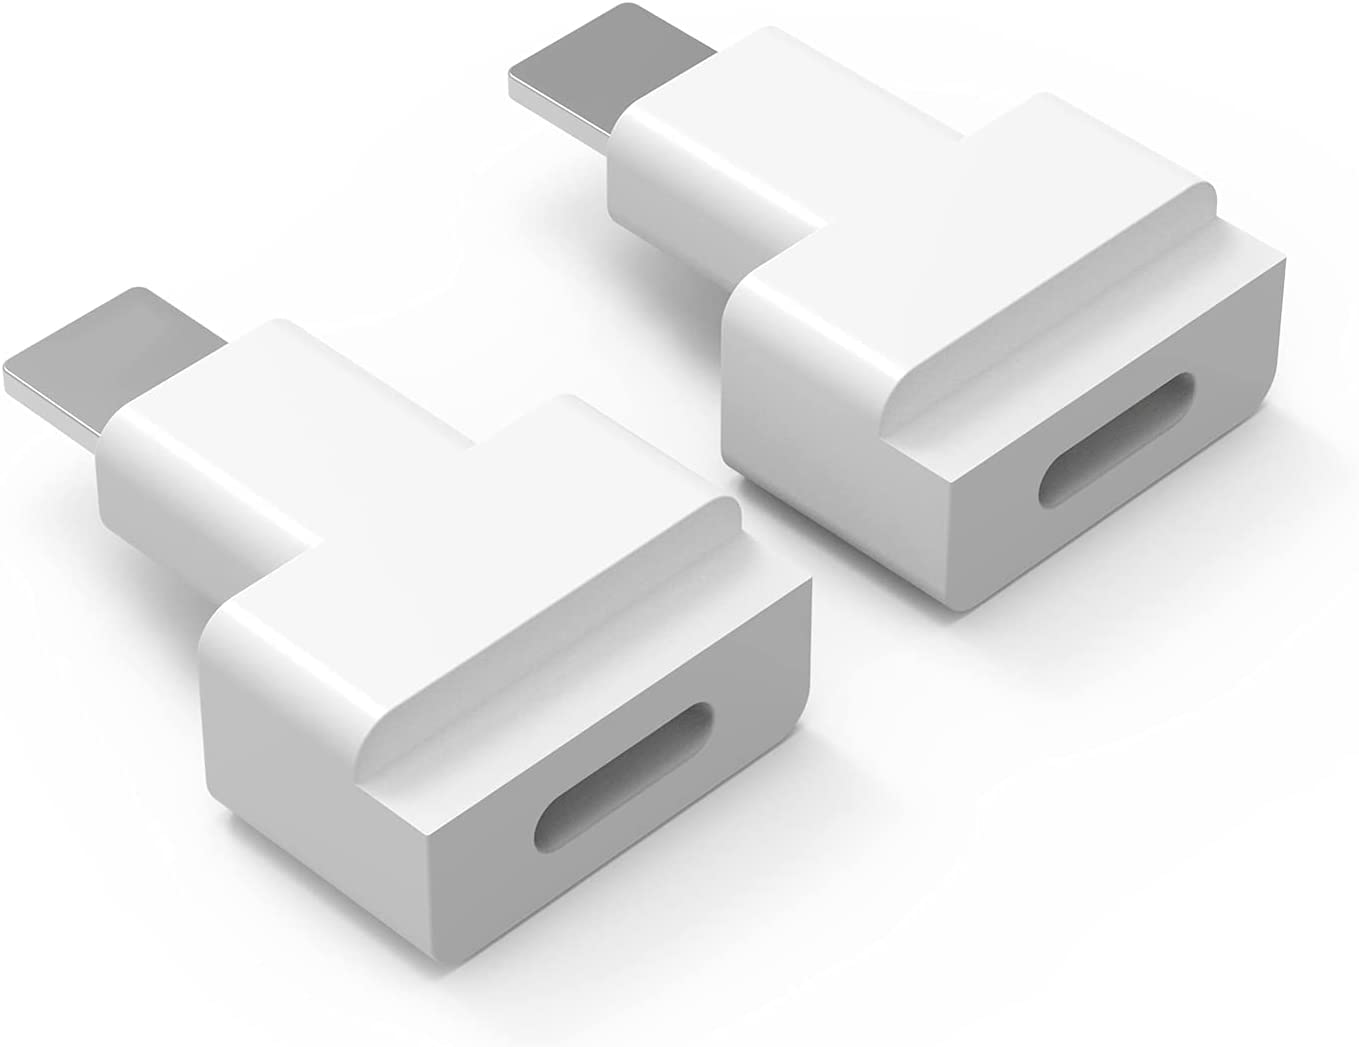 Male to Female Docking Extender Adapter Connector. 2PCS Female to Male i OS Phone Extension Dock Converter Transfer Audio Video Music Picture and Power Charger. ( White )